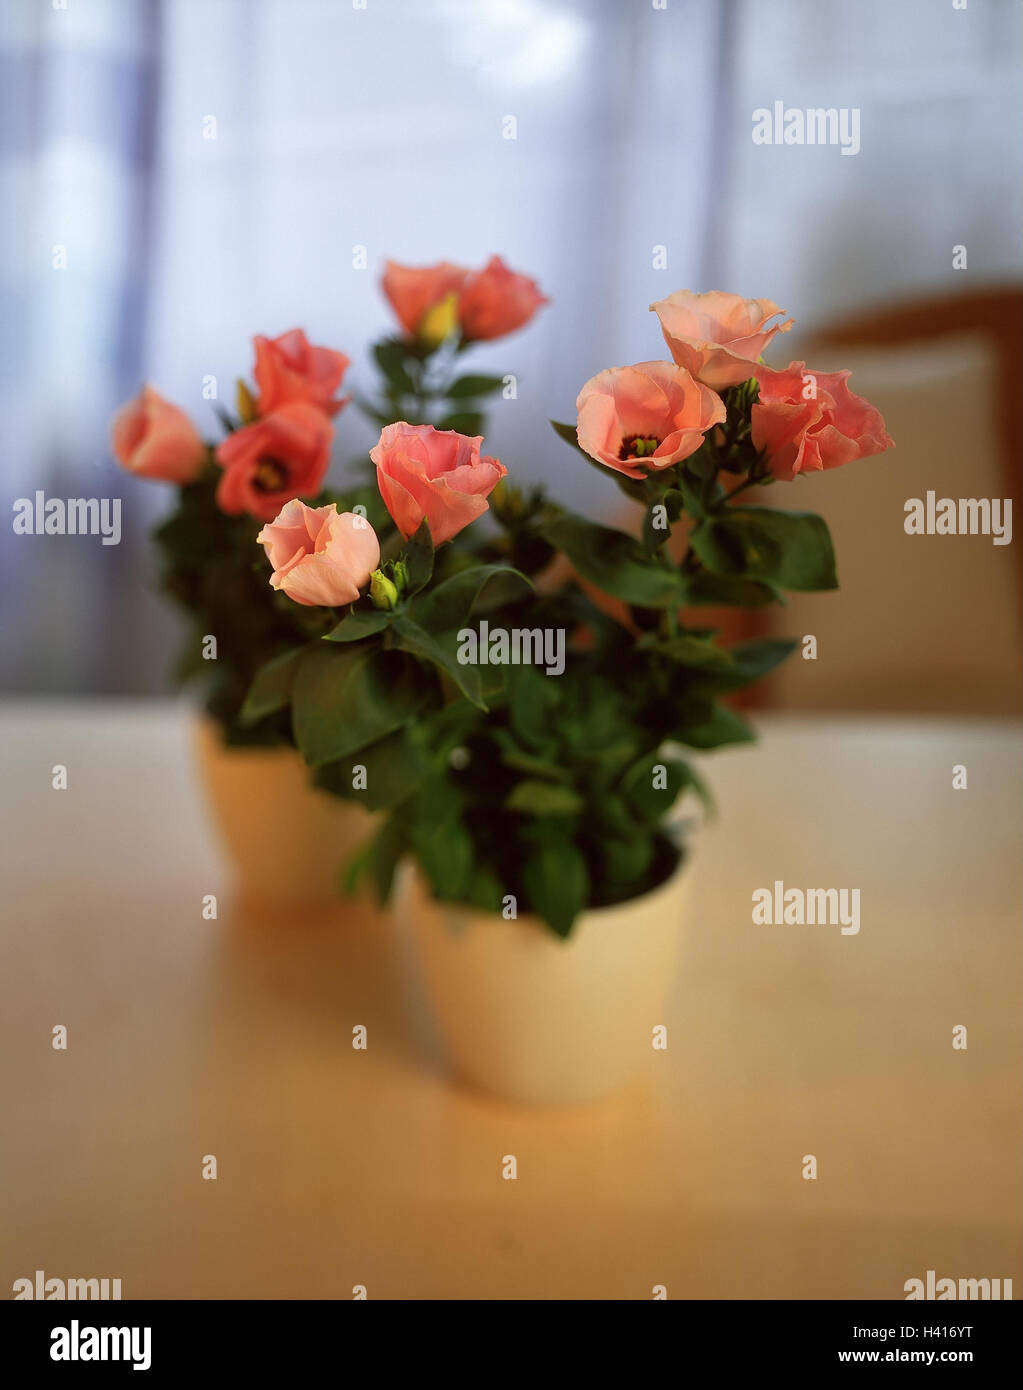 Eustoma grandiflorum, syn. Lisianthus russelianus, 'Rose Bell' potted plant, blossoms, pink, potted flower, - Stock Image